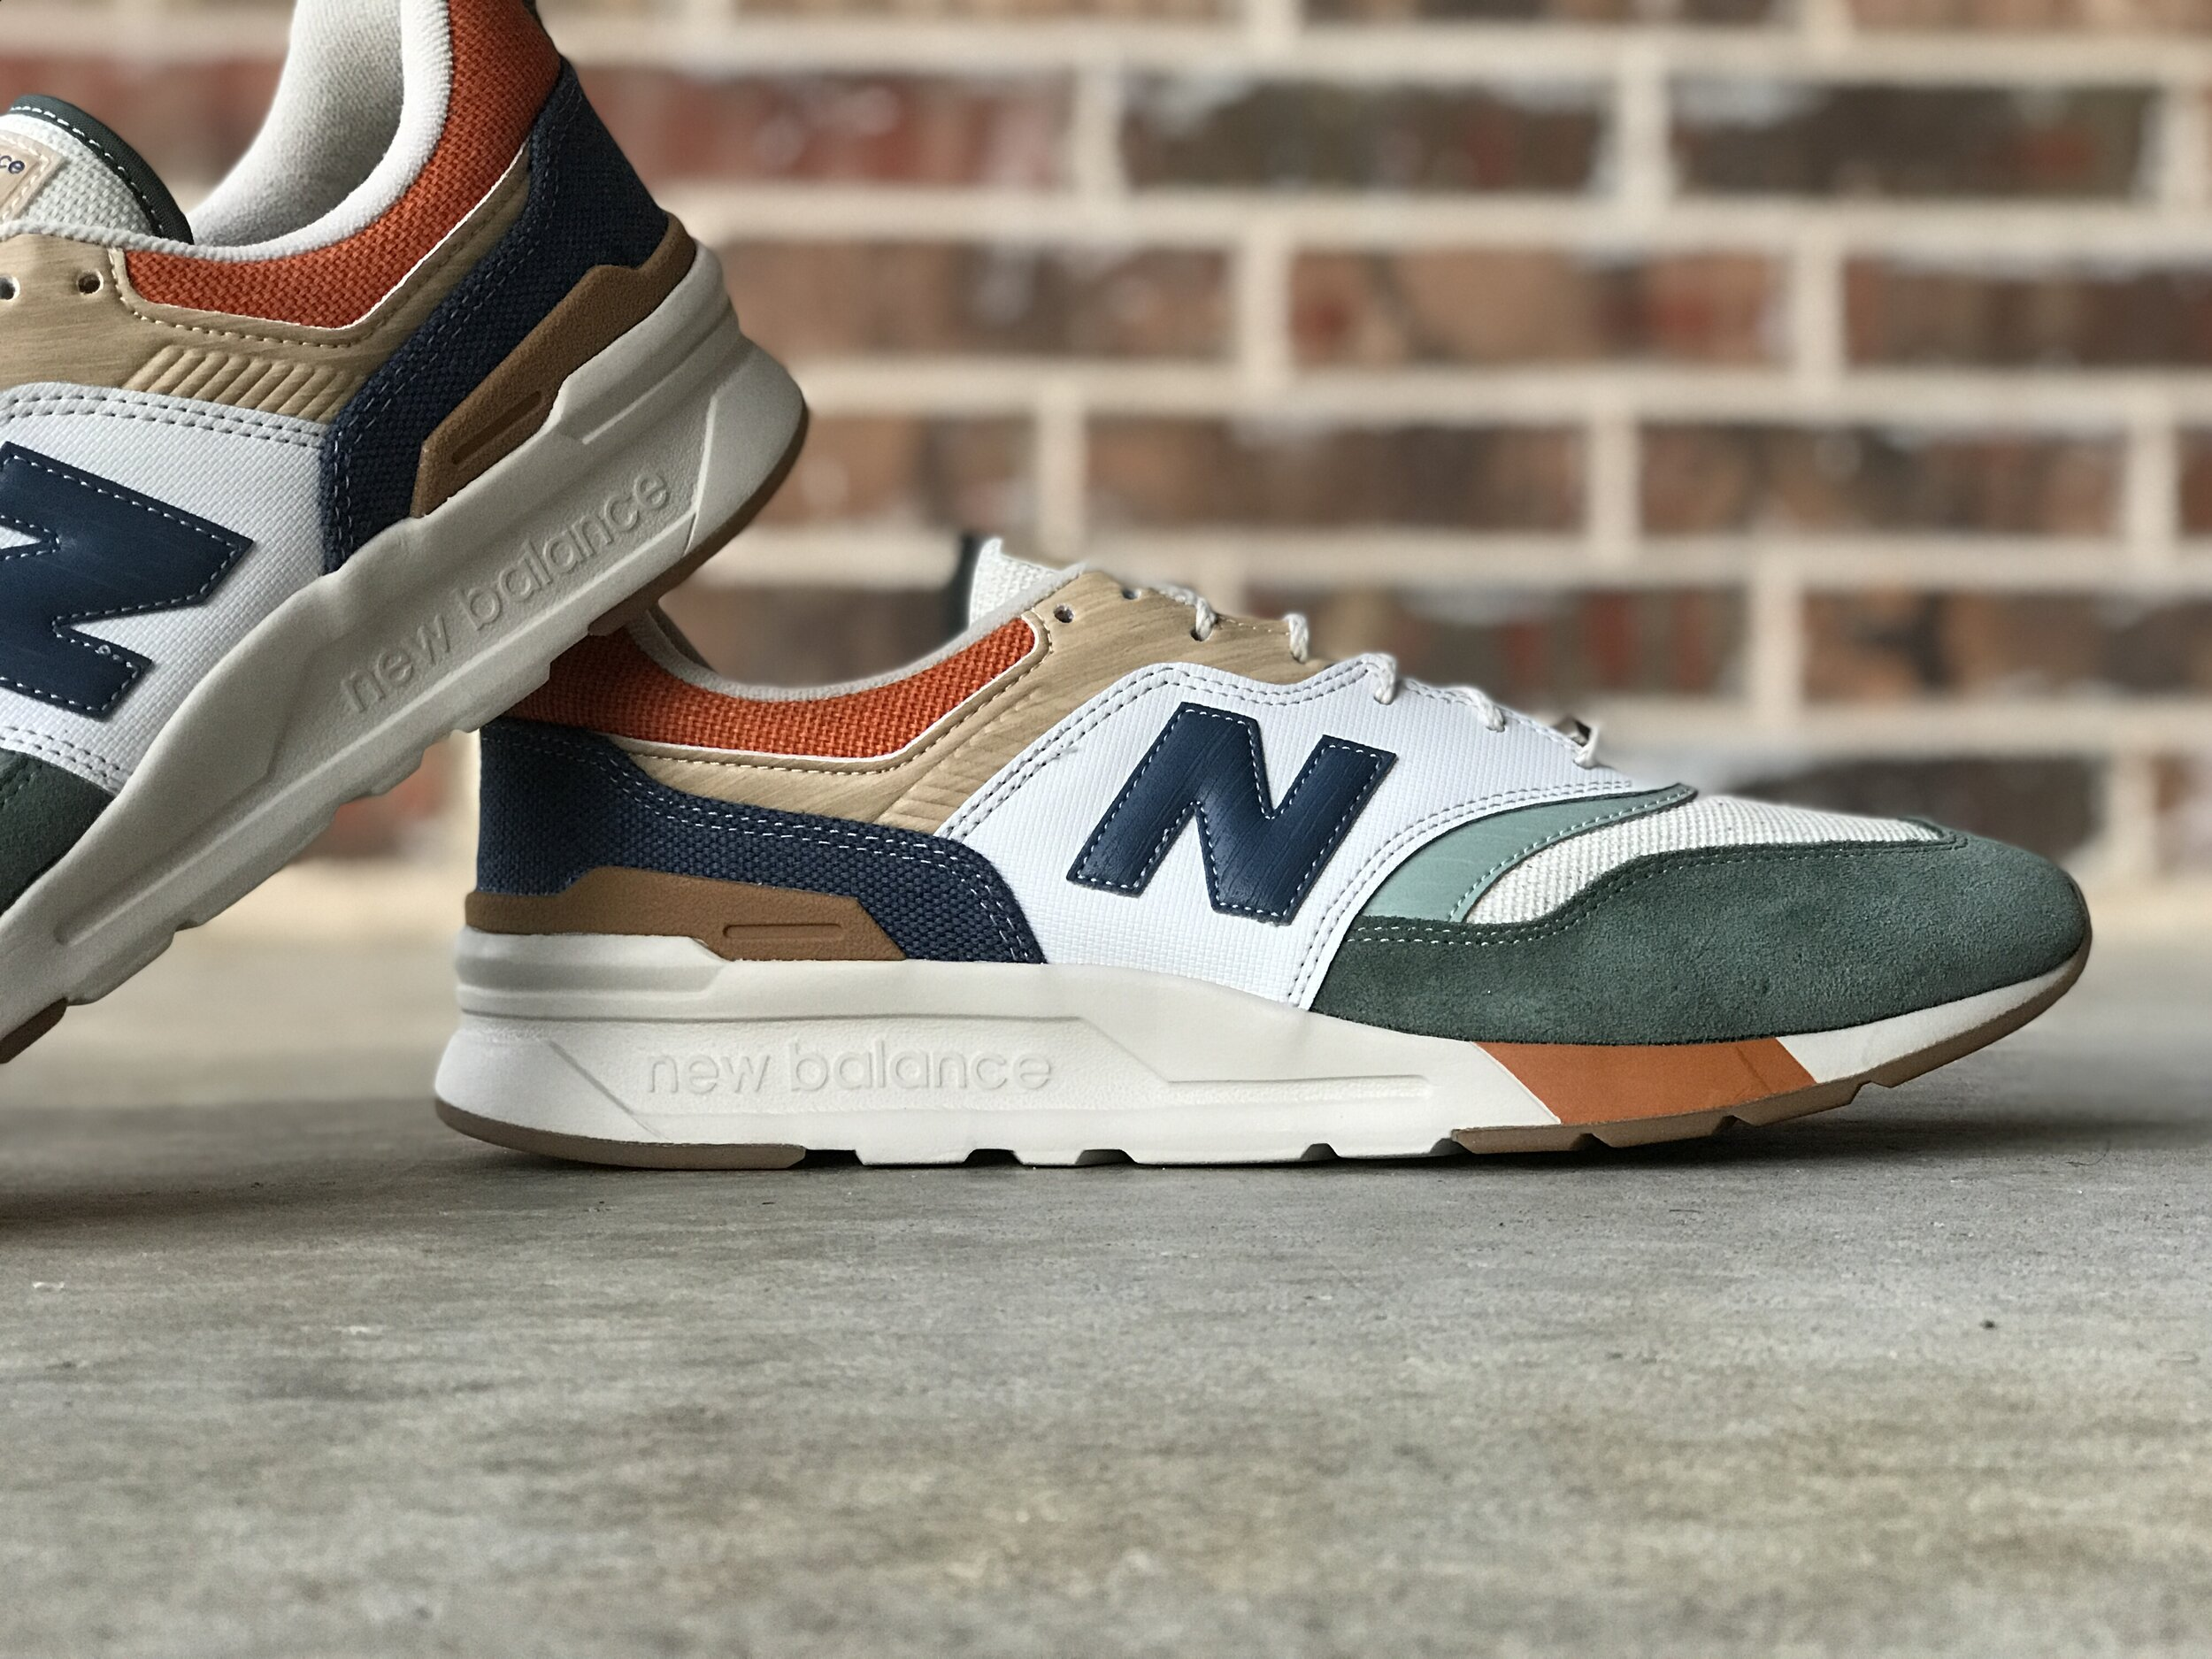 A Detailed Look At the New Balance 997H